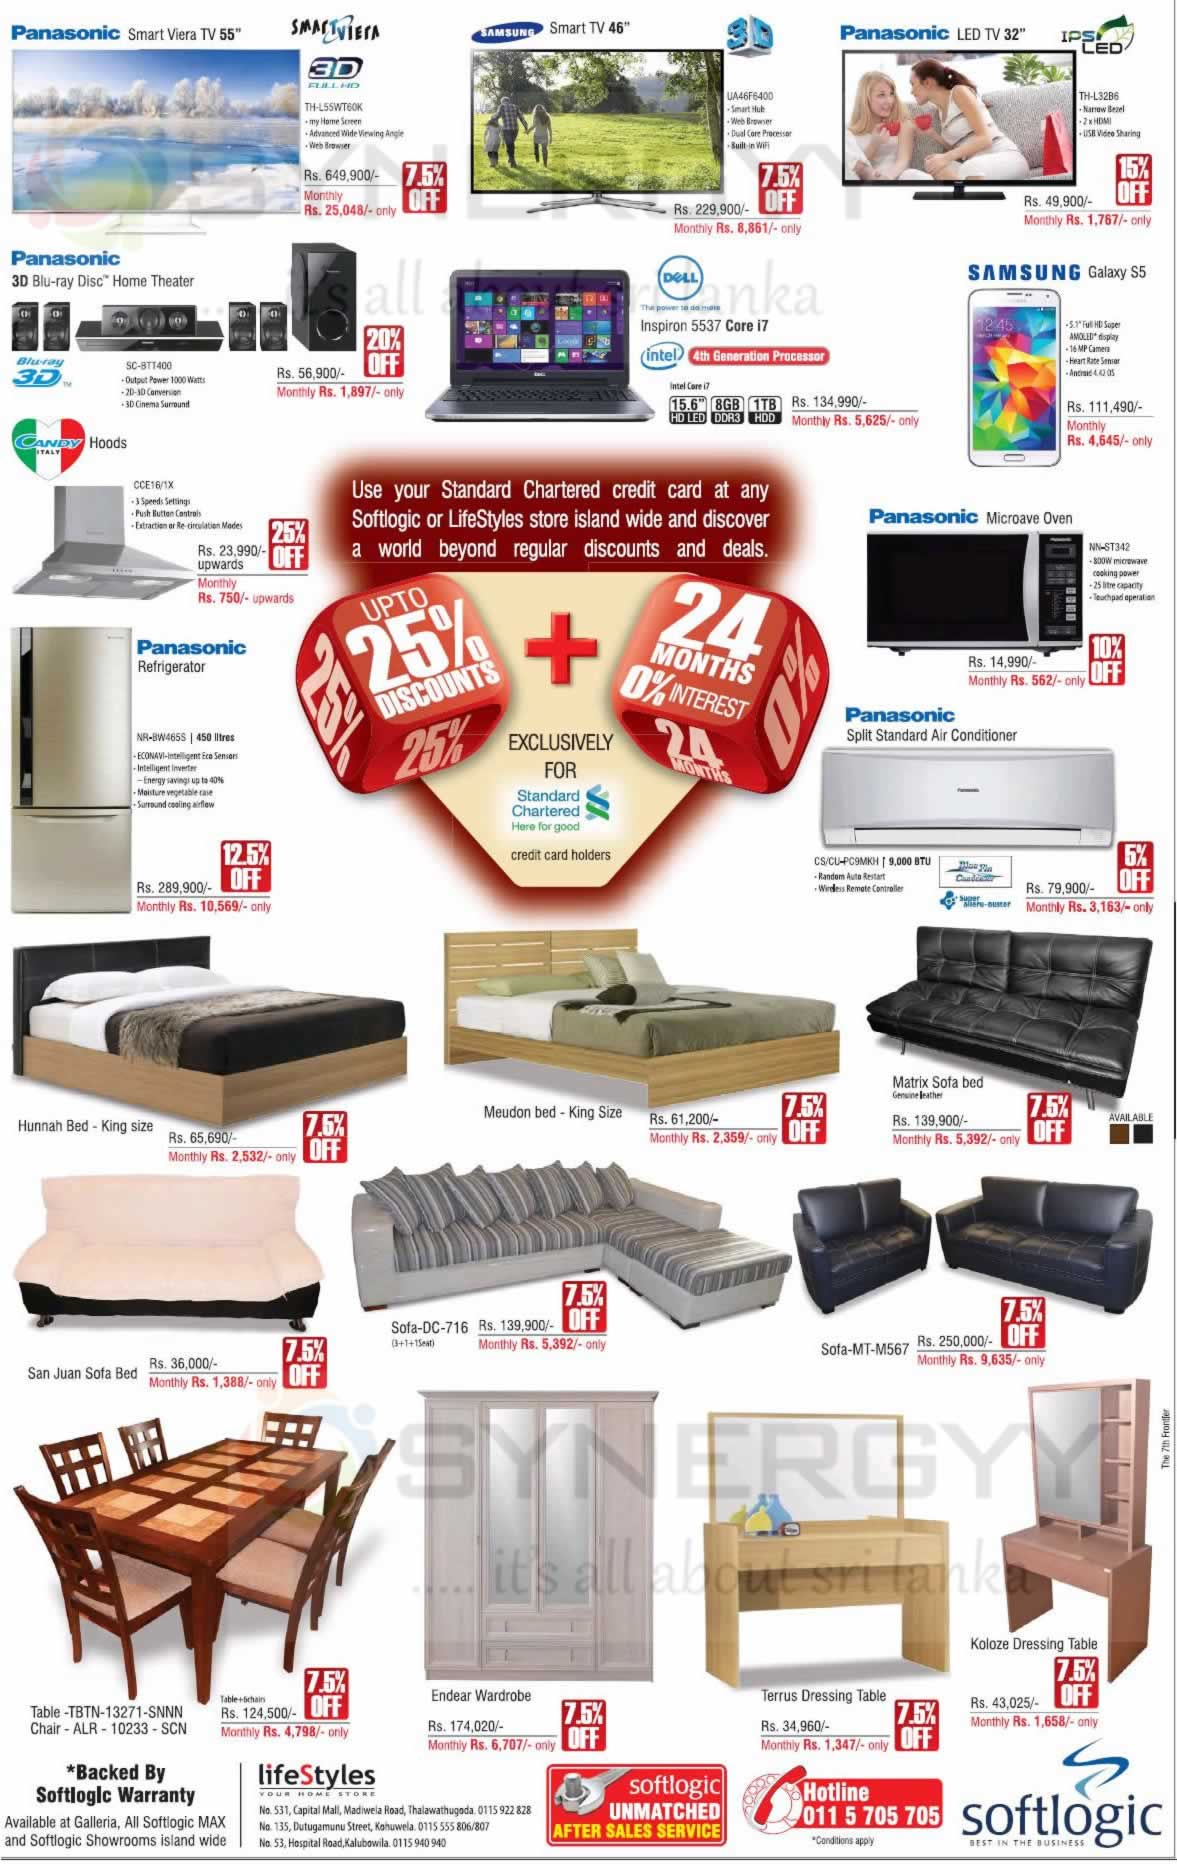 Softlogic Lifestyle Home Appliances And Furniture Prices June 2014 Synergyy